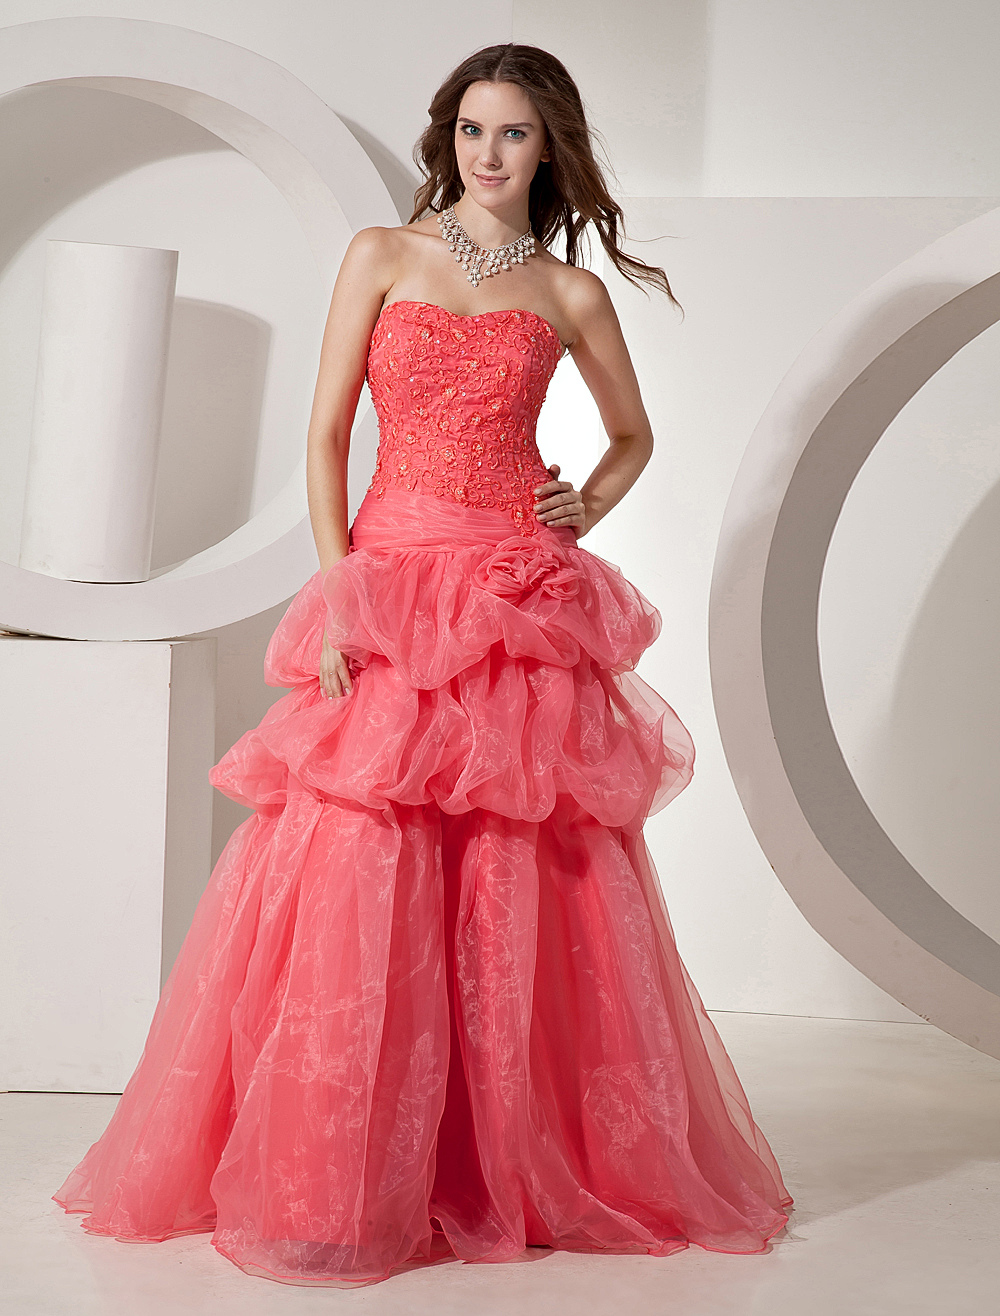 Watermelon Ball Gown Sweetheart Neck Quinceanera Dress $179.99 AT vintagedancer.com